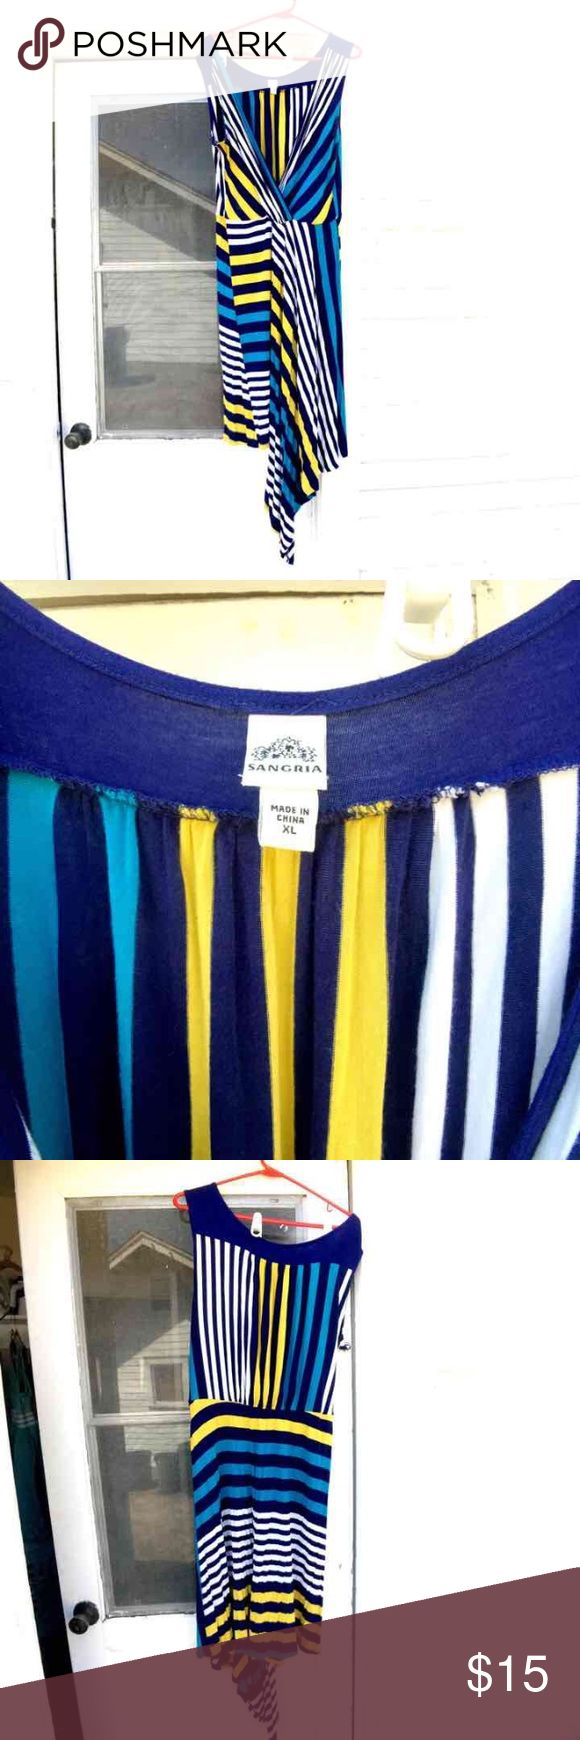 """Asymmetrical hem striped jersey dress Bright, modern jersey dress, made by Sangria. Colors are navy, white, yellow, and teal. Dress is about knee-length, but varies because of the asymmetrical hem. I'm 5'9"""", and the dress hovered just above my knee at its shortest. Very comfortable dress that can be dressed up or down, depending. Worn twice and laundered according to instructions. Non-smoker. Sangria Dresses Asymmetrical"""